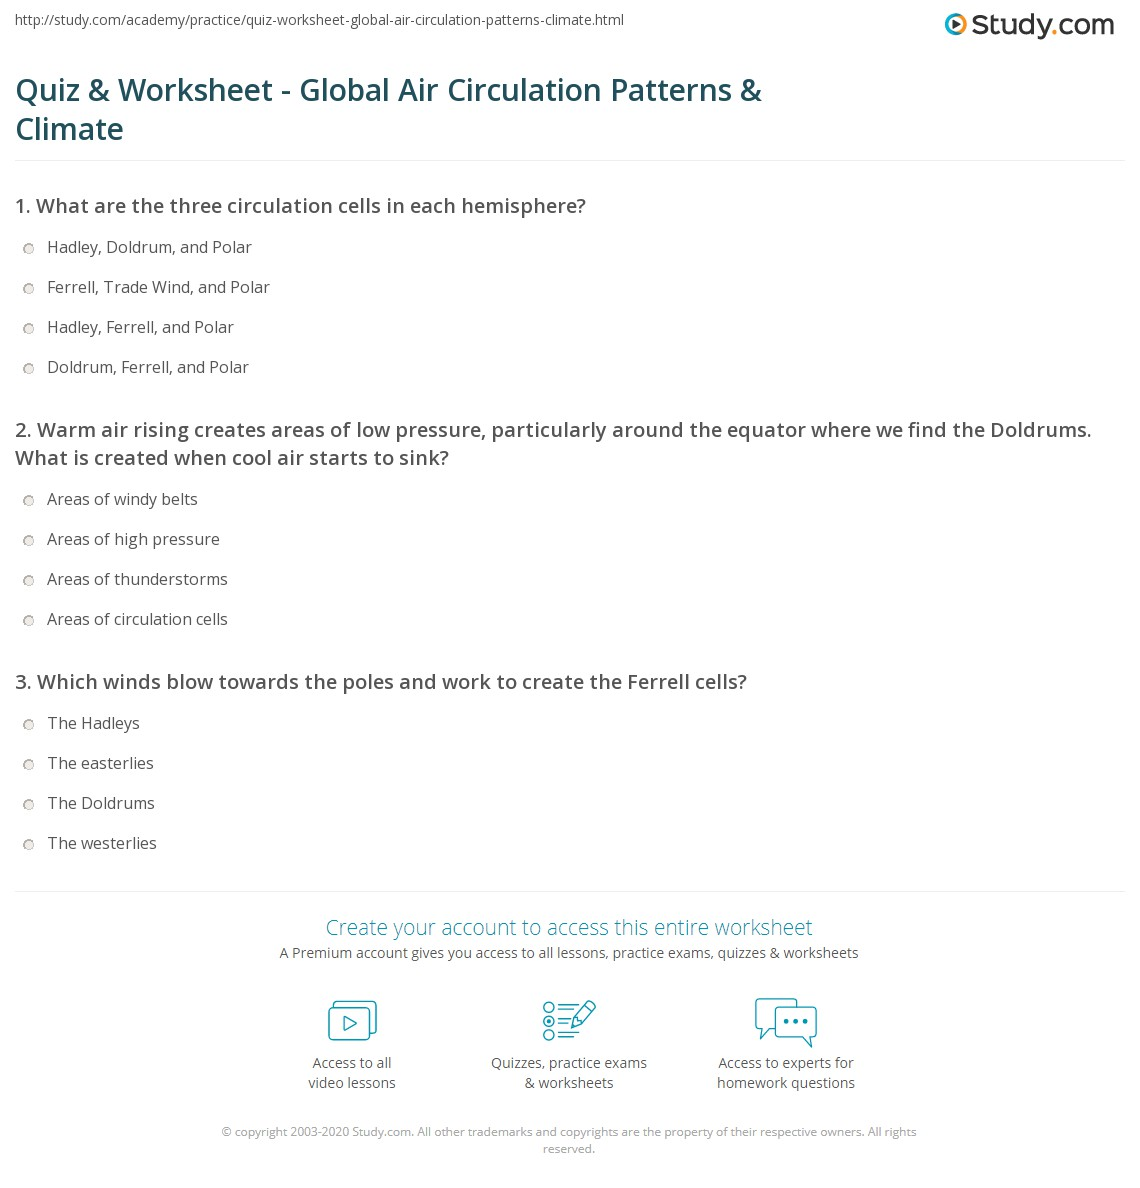 Quiz Worksheet Global Air Circulation Patterns Climate Study